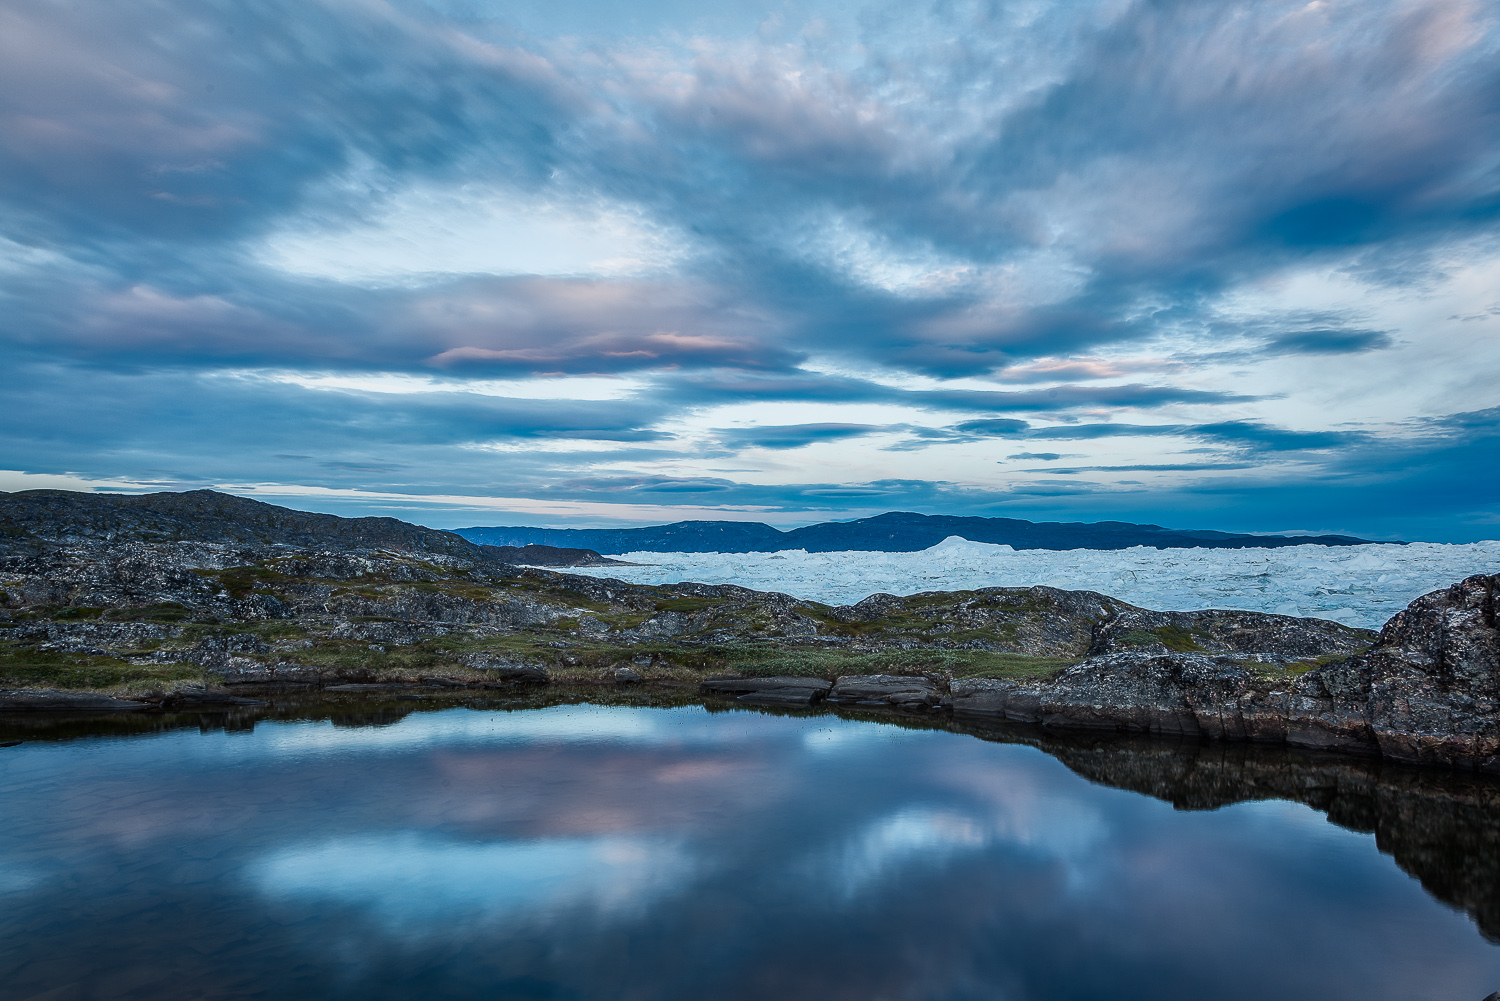 safe-waters-and-beyond-ilulissat-icefjord-greenland.jpg